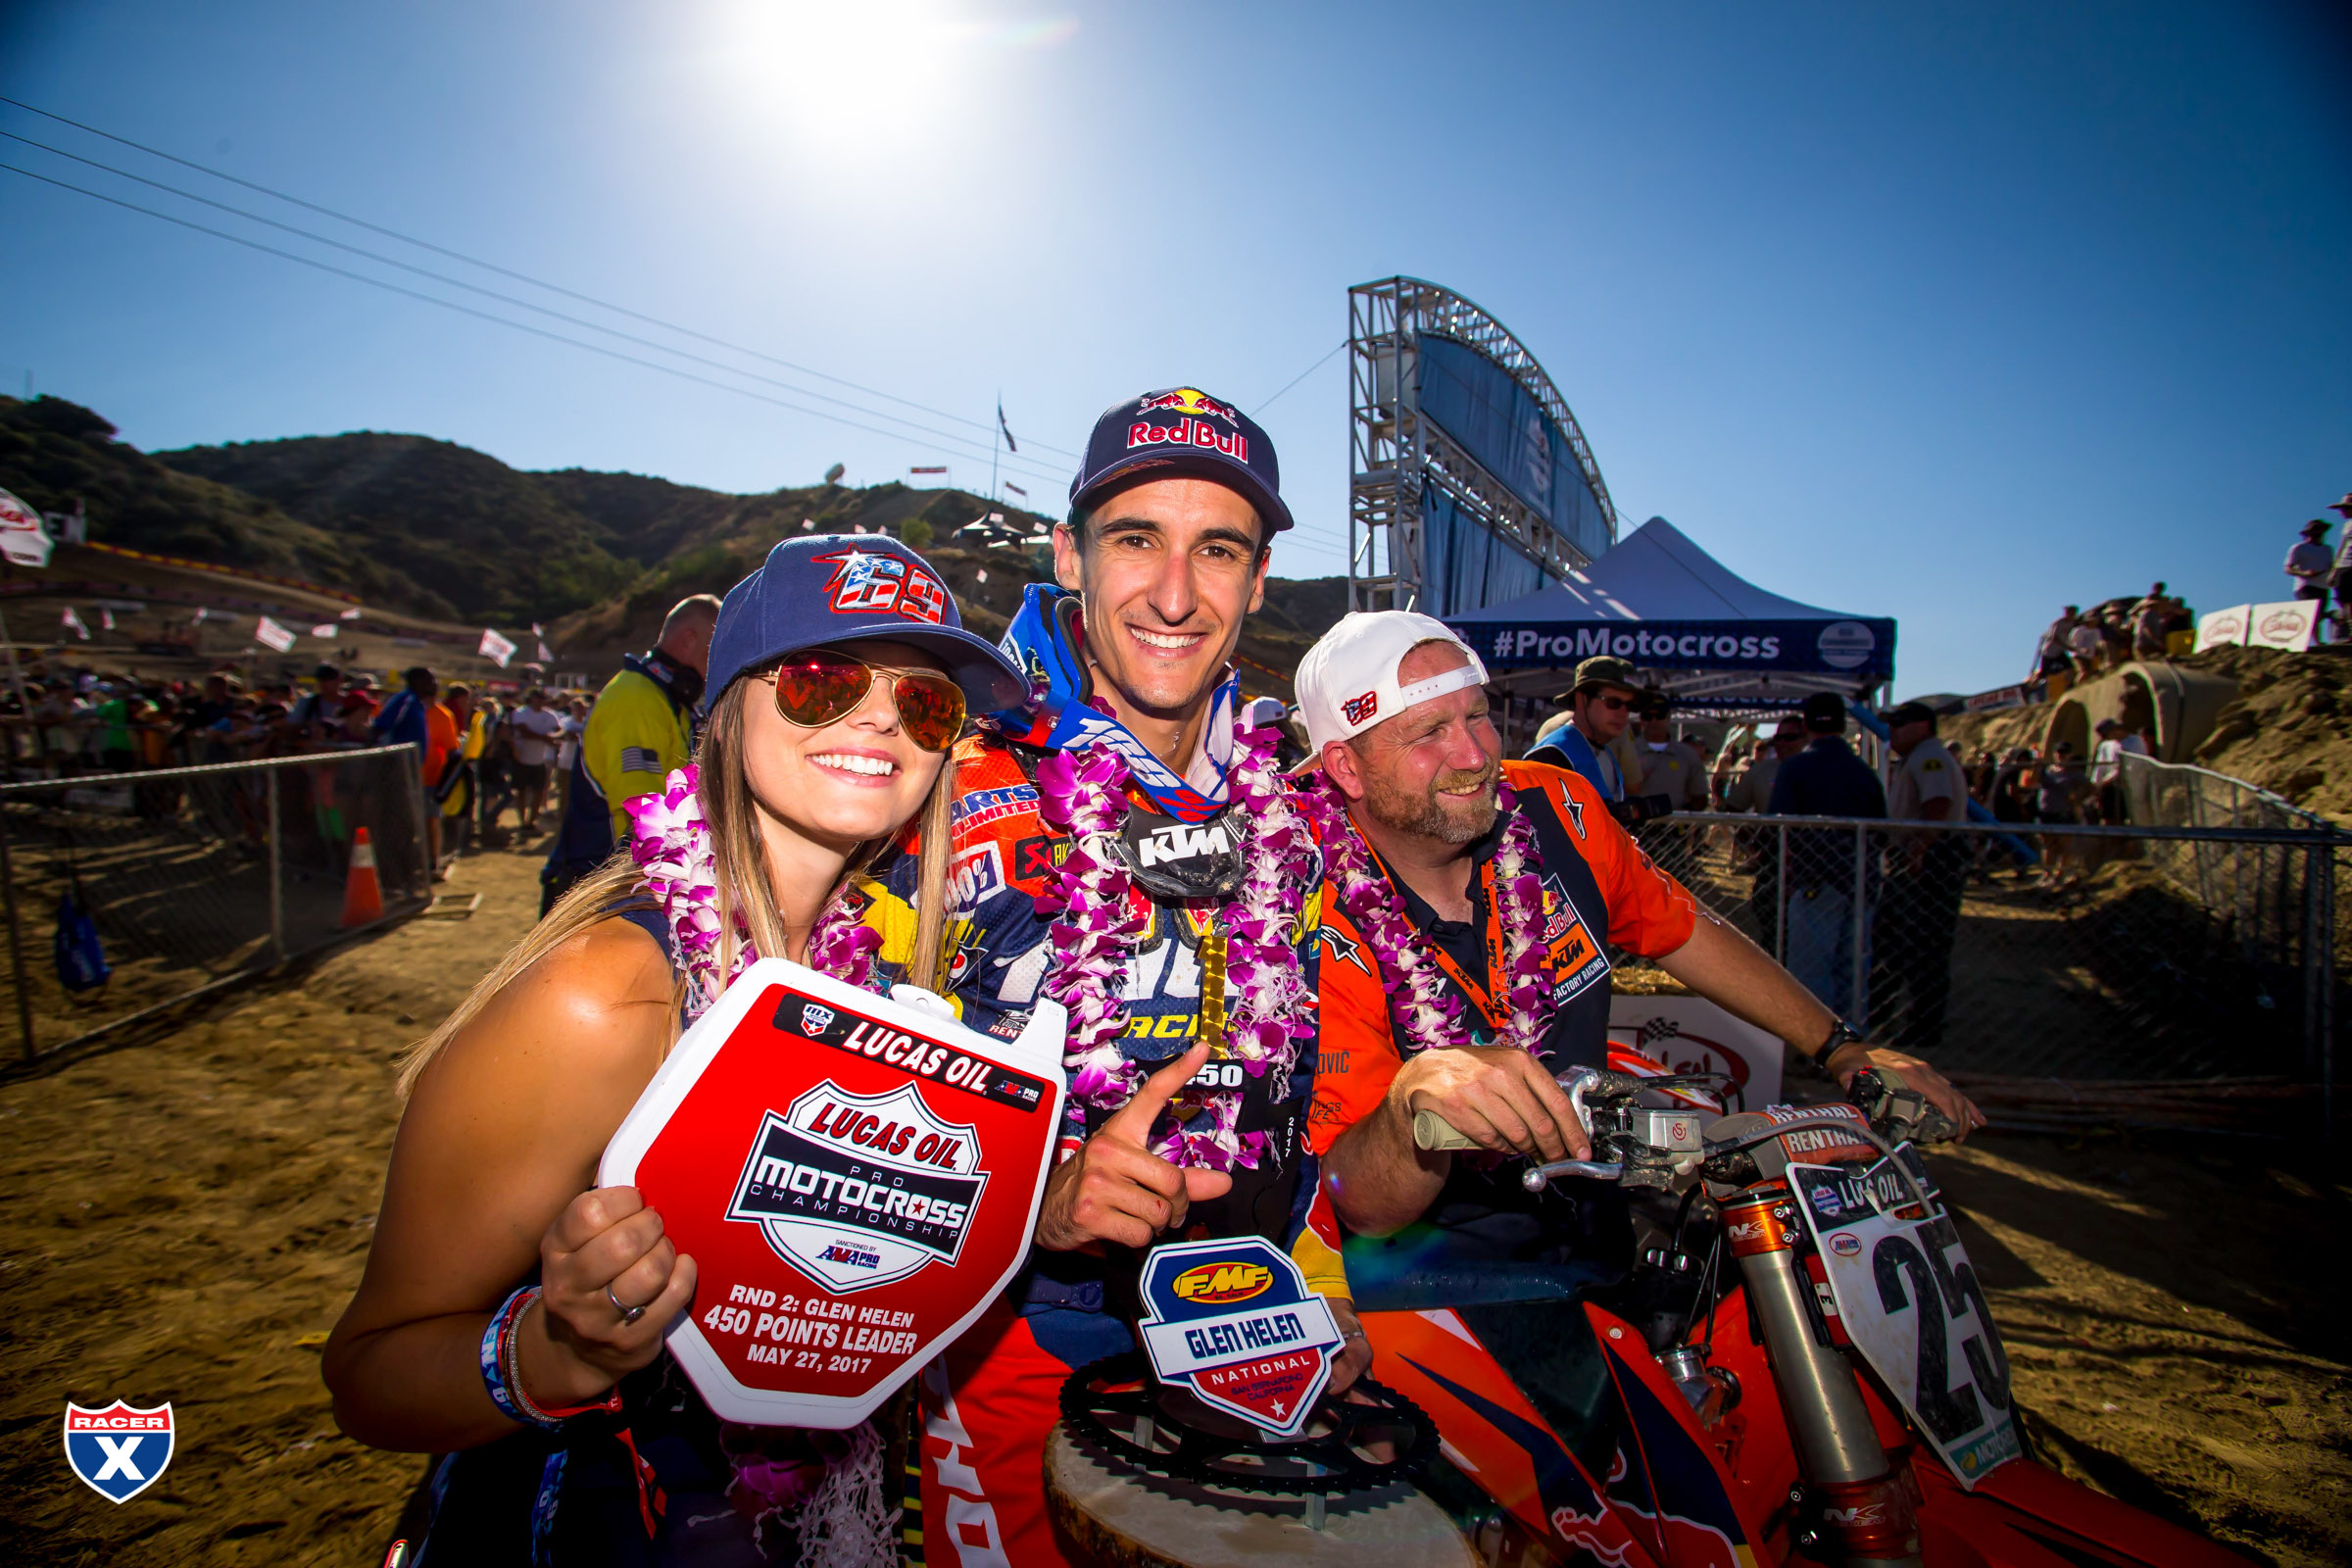 Podium_MX17_GlenHelen_RS_0299